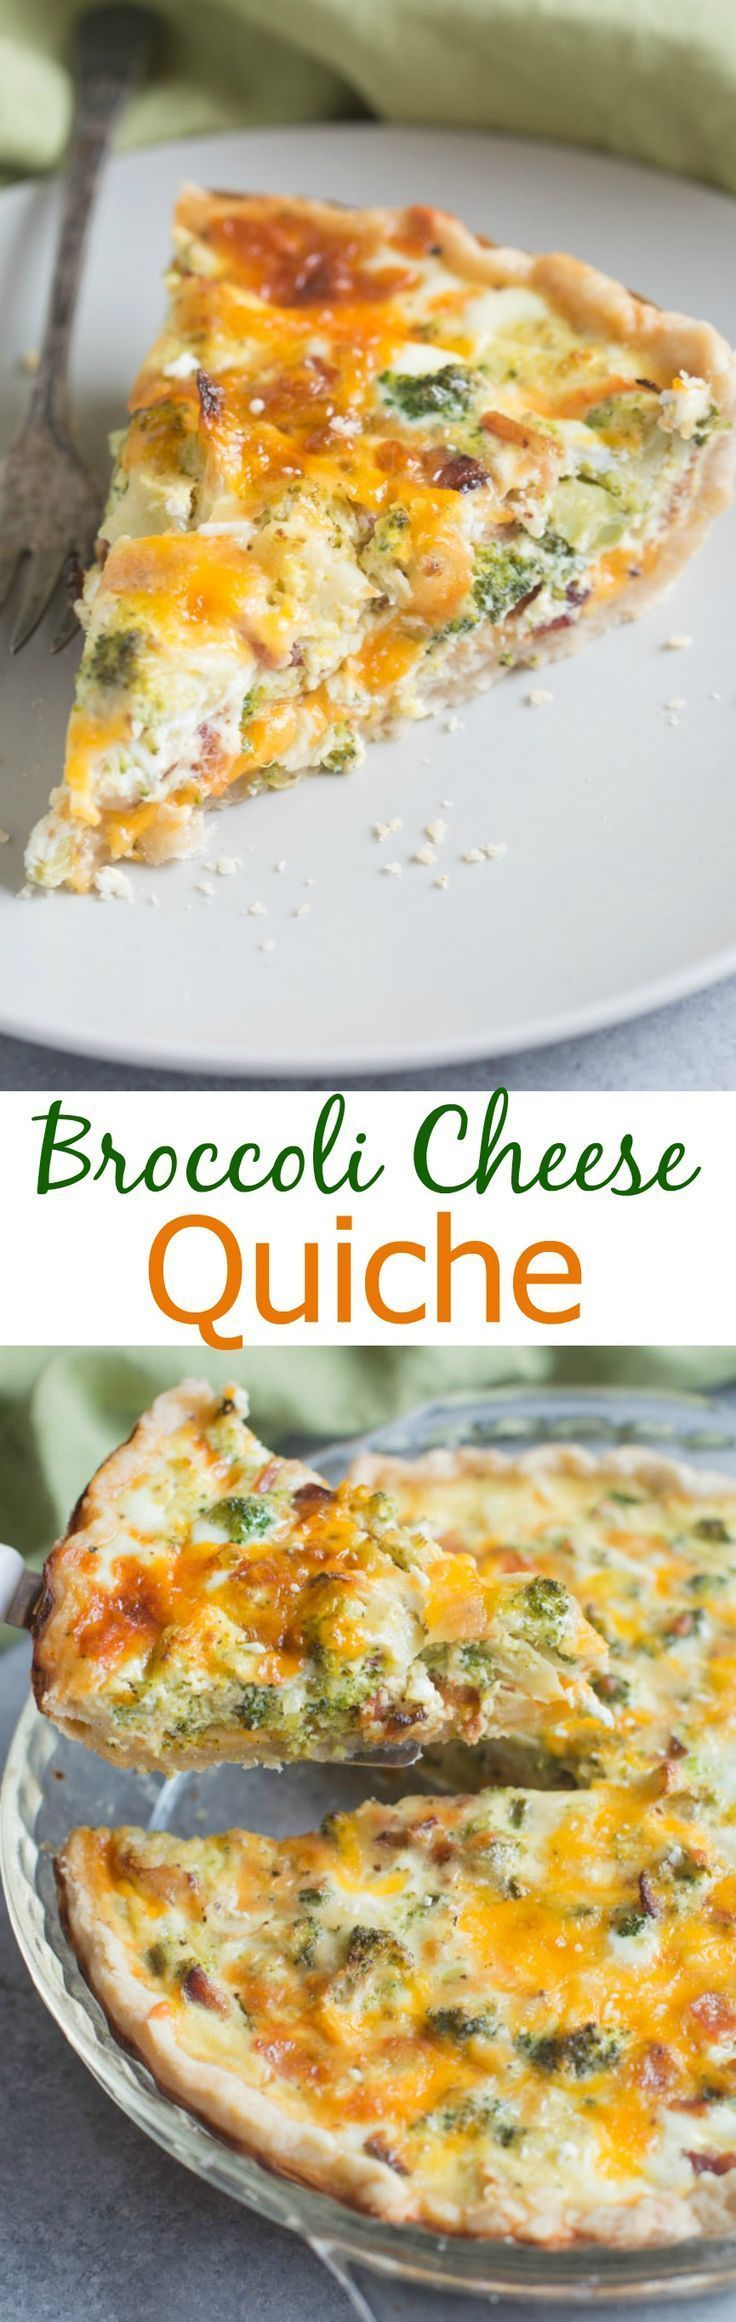 Broccoli Cheese Quiche made in my favorite homemade pie crust. The perfect Easter brunch!